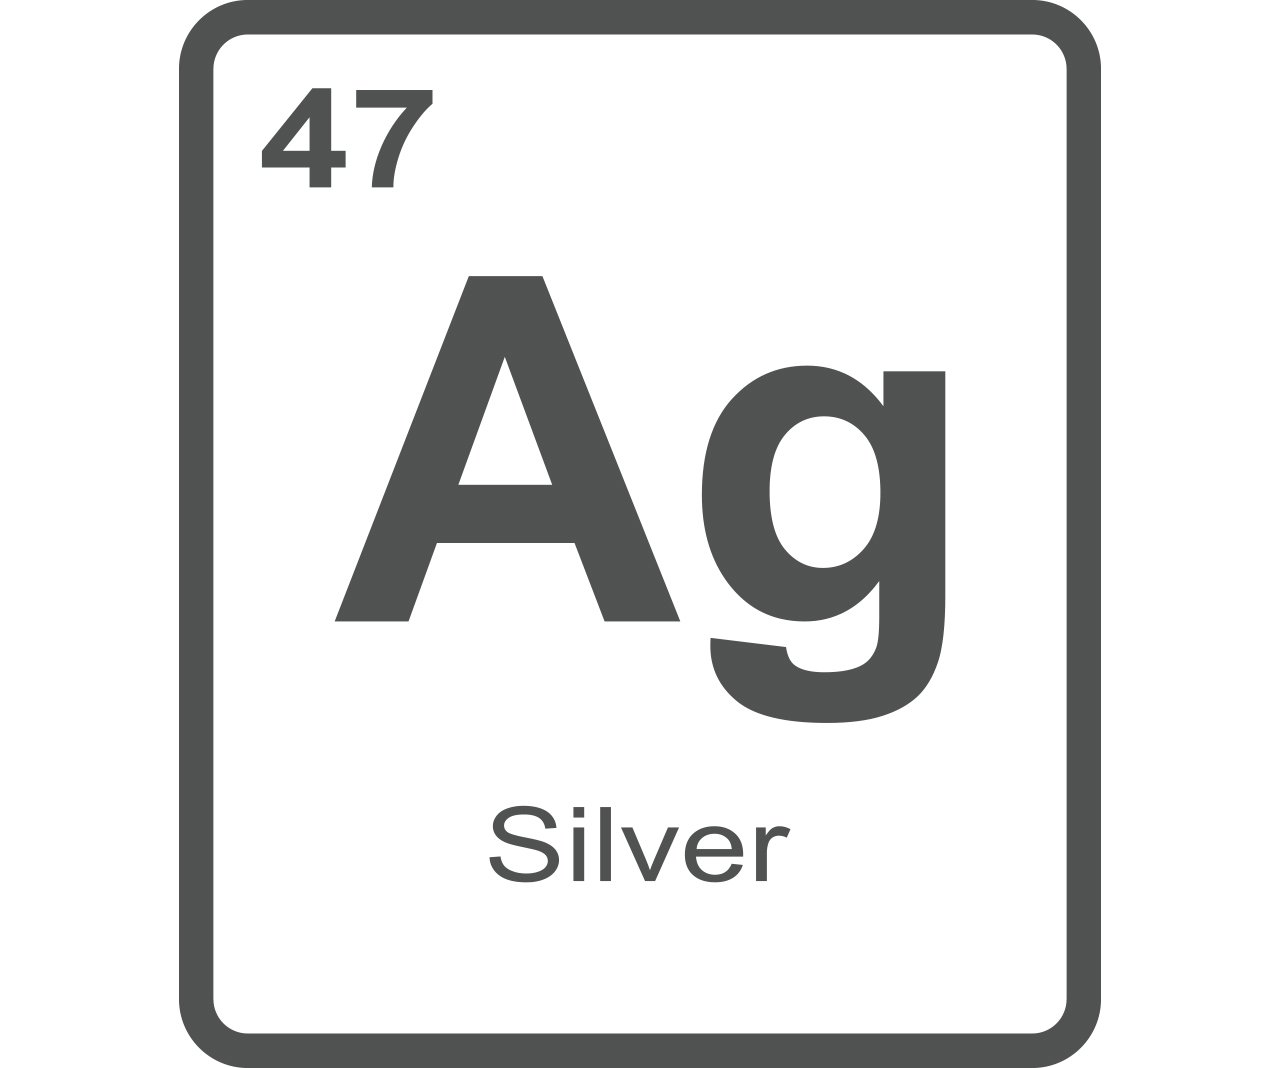 Ingredient for Micro-colloidal Silver(10ppm)